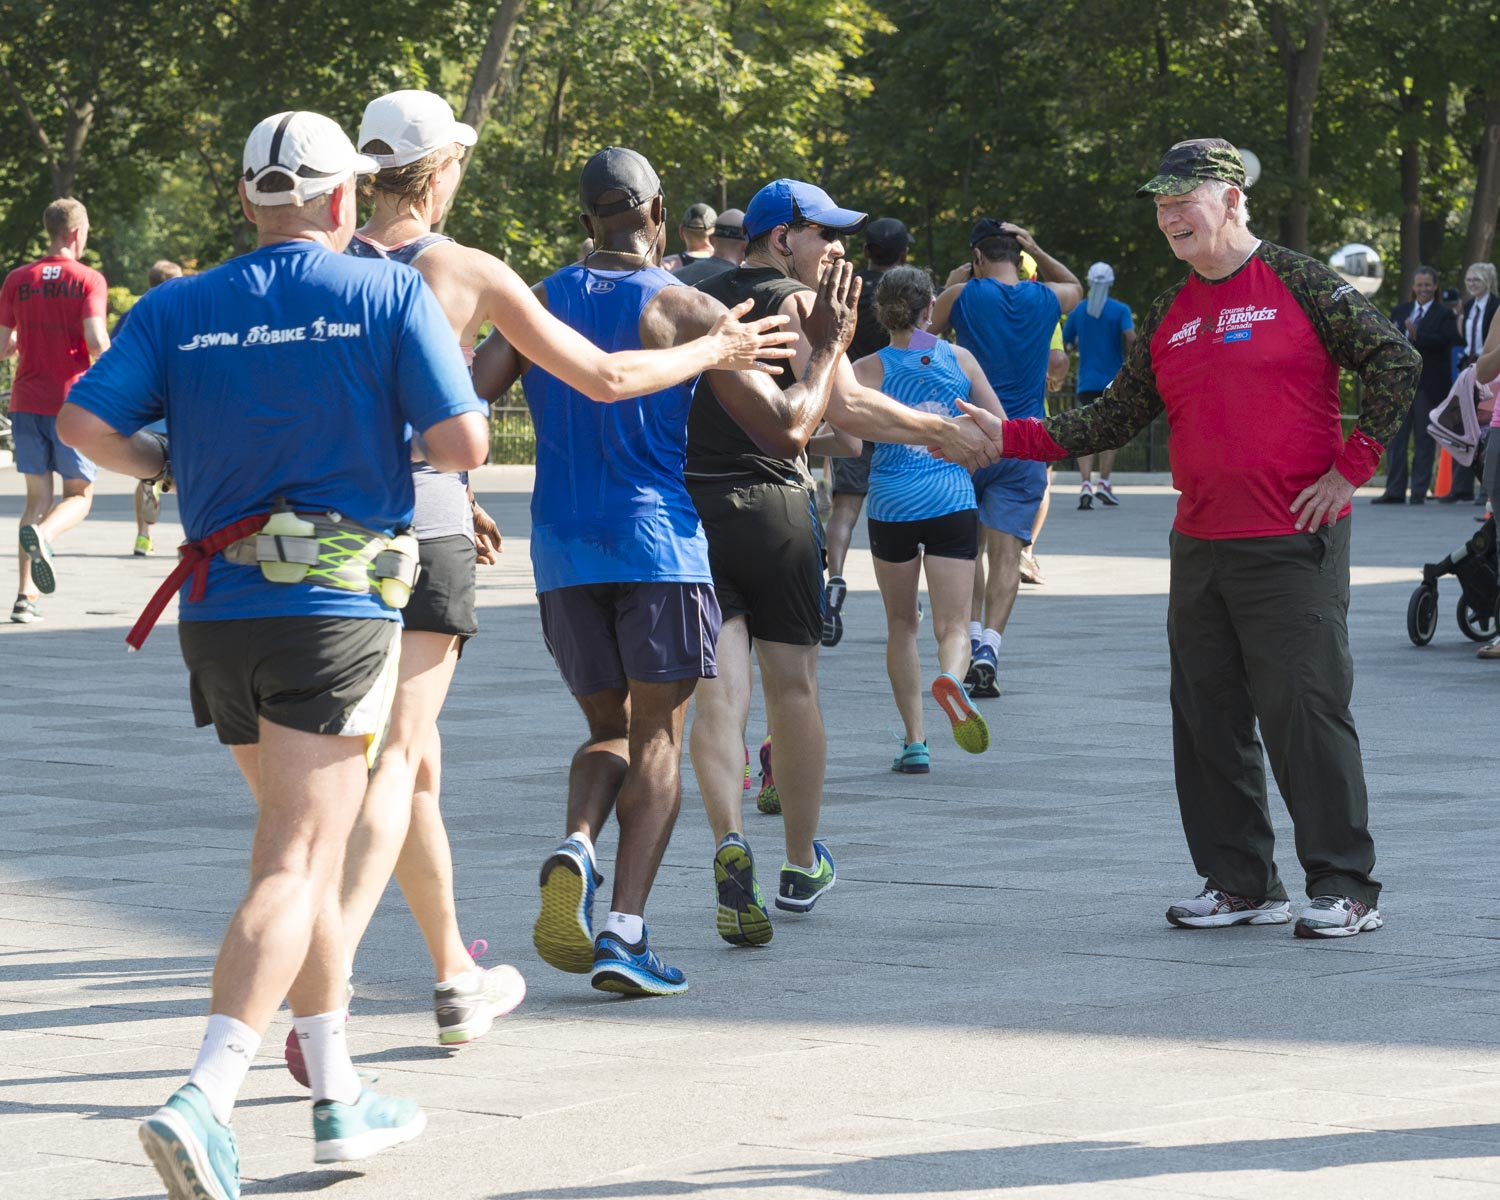 The Governor General cheered on runners as they arrived in front of the official residence.